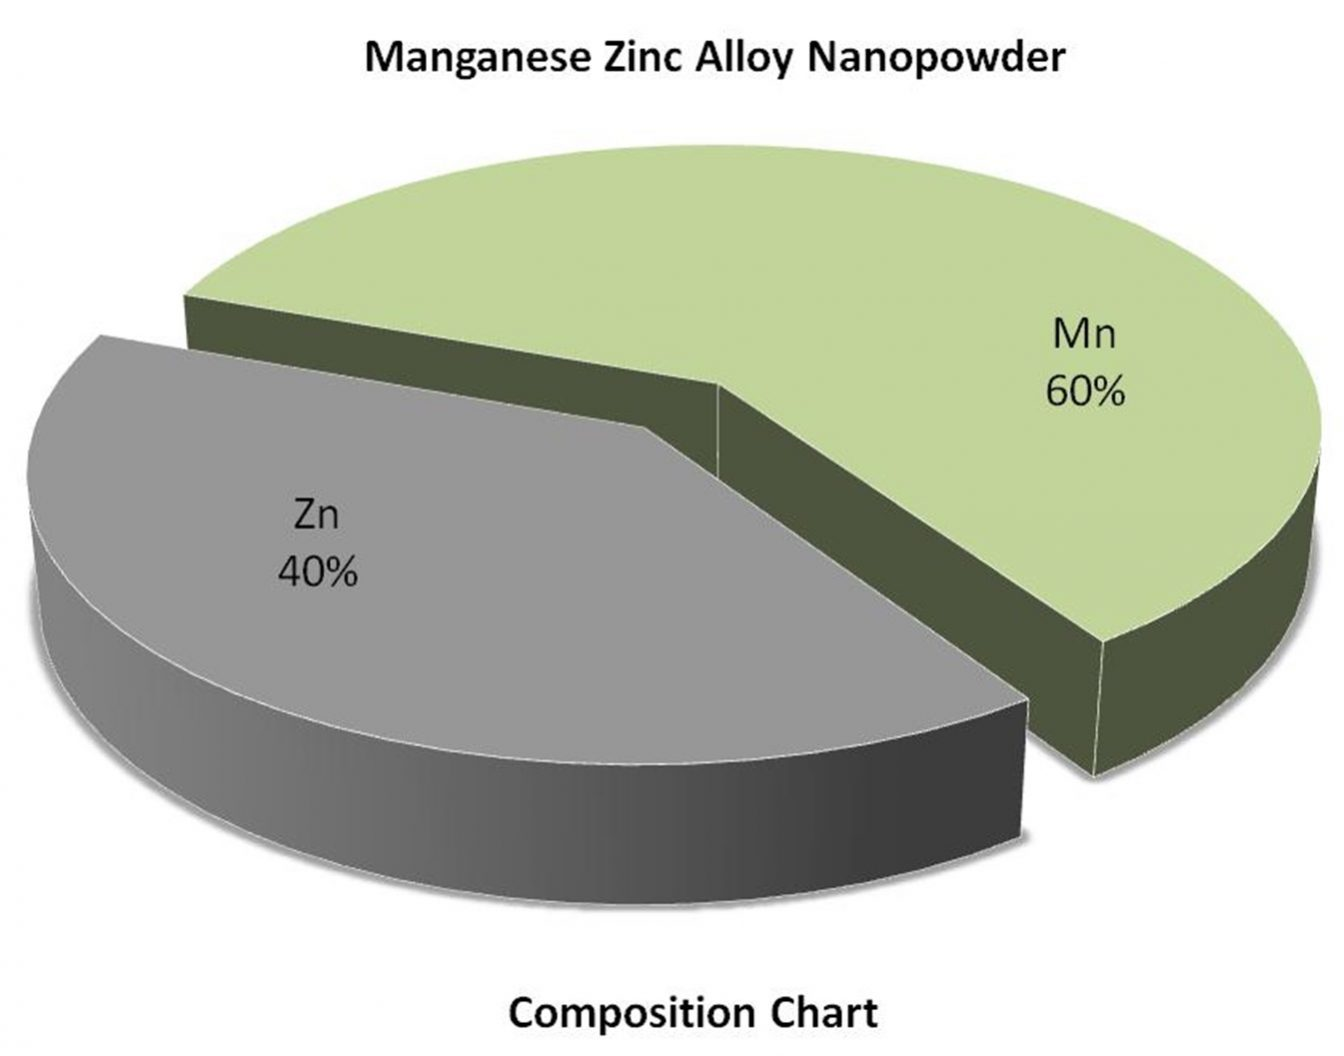 Composition Chart - Mn:Zn Alloy Nanoparticles